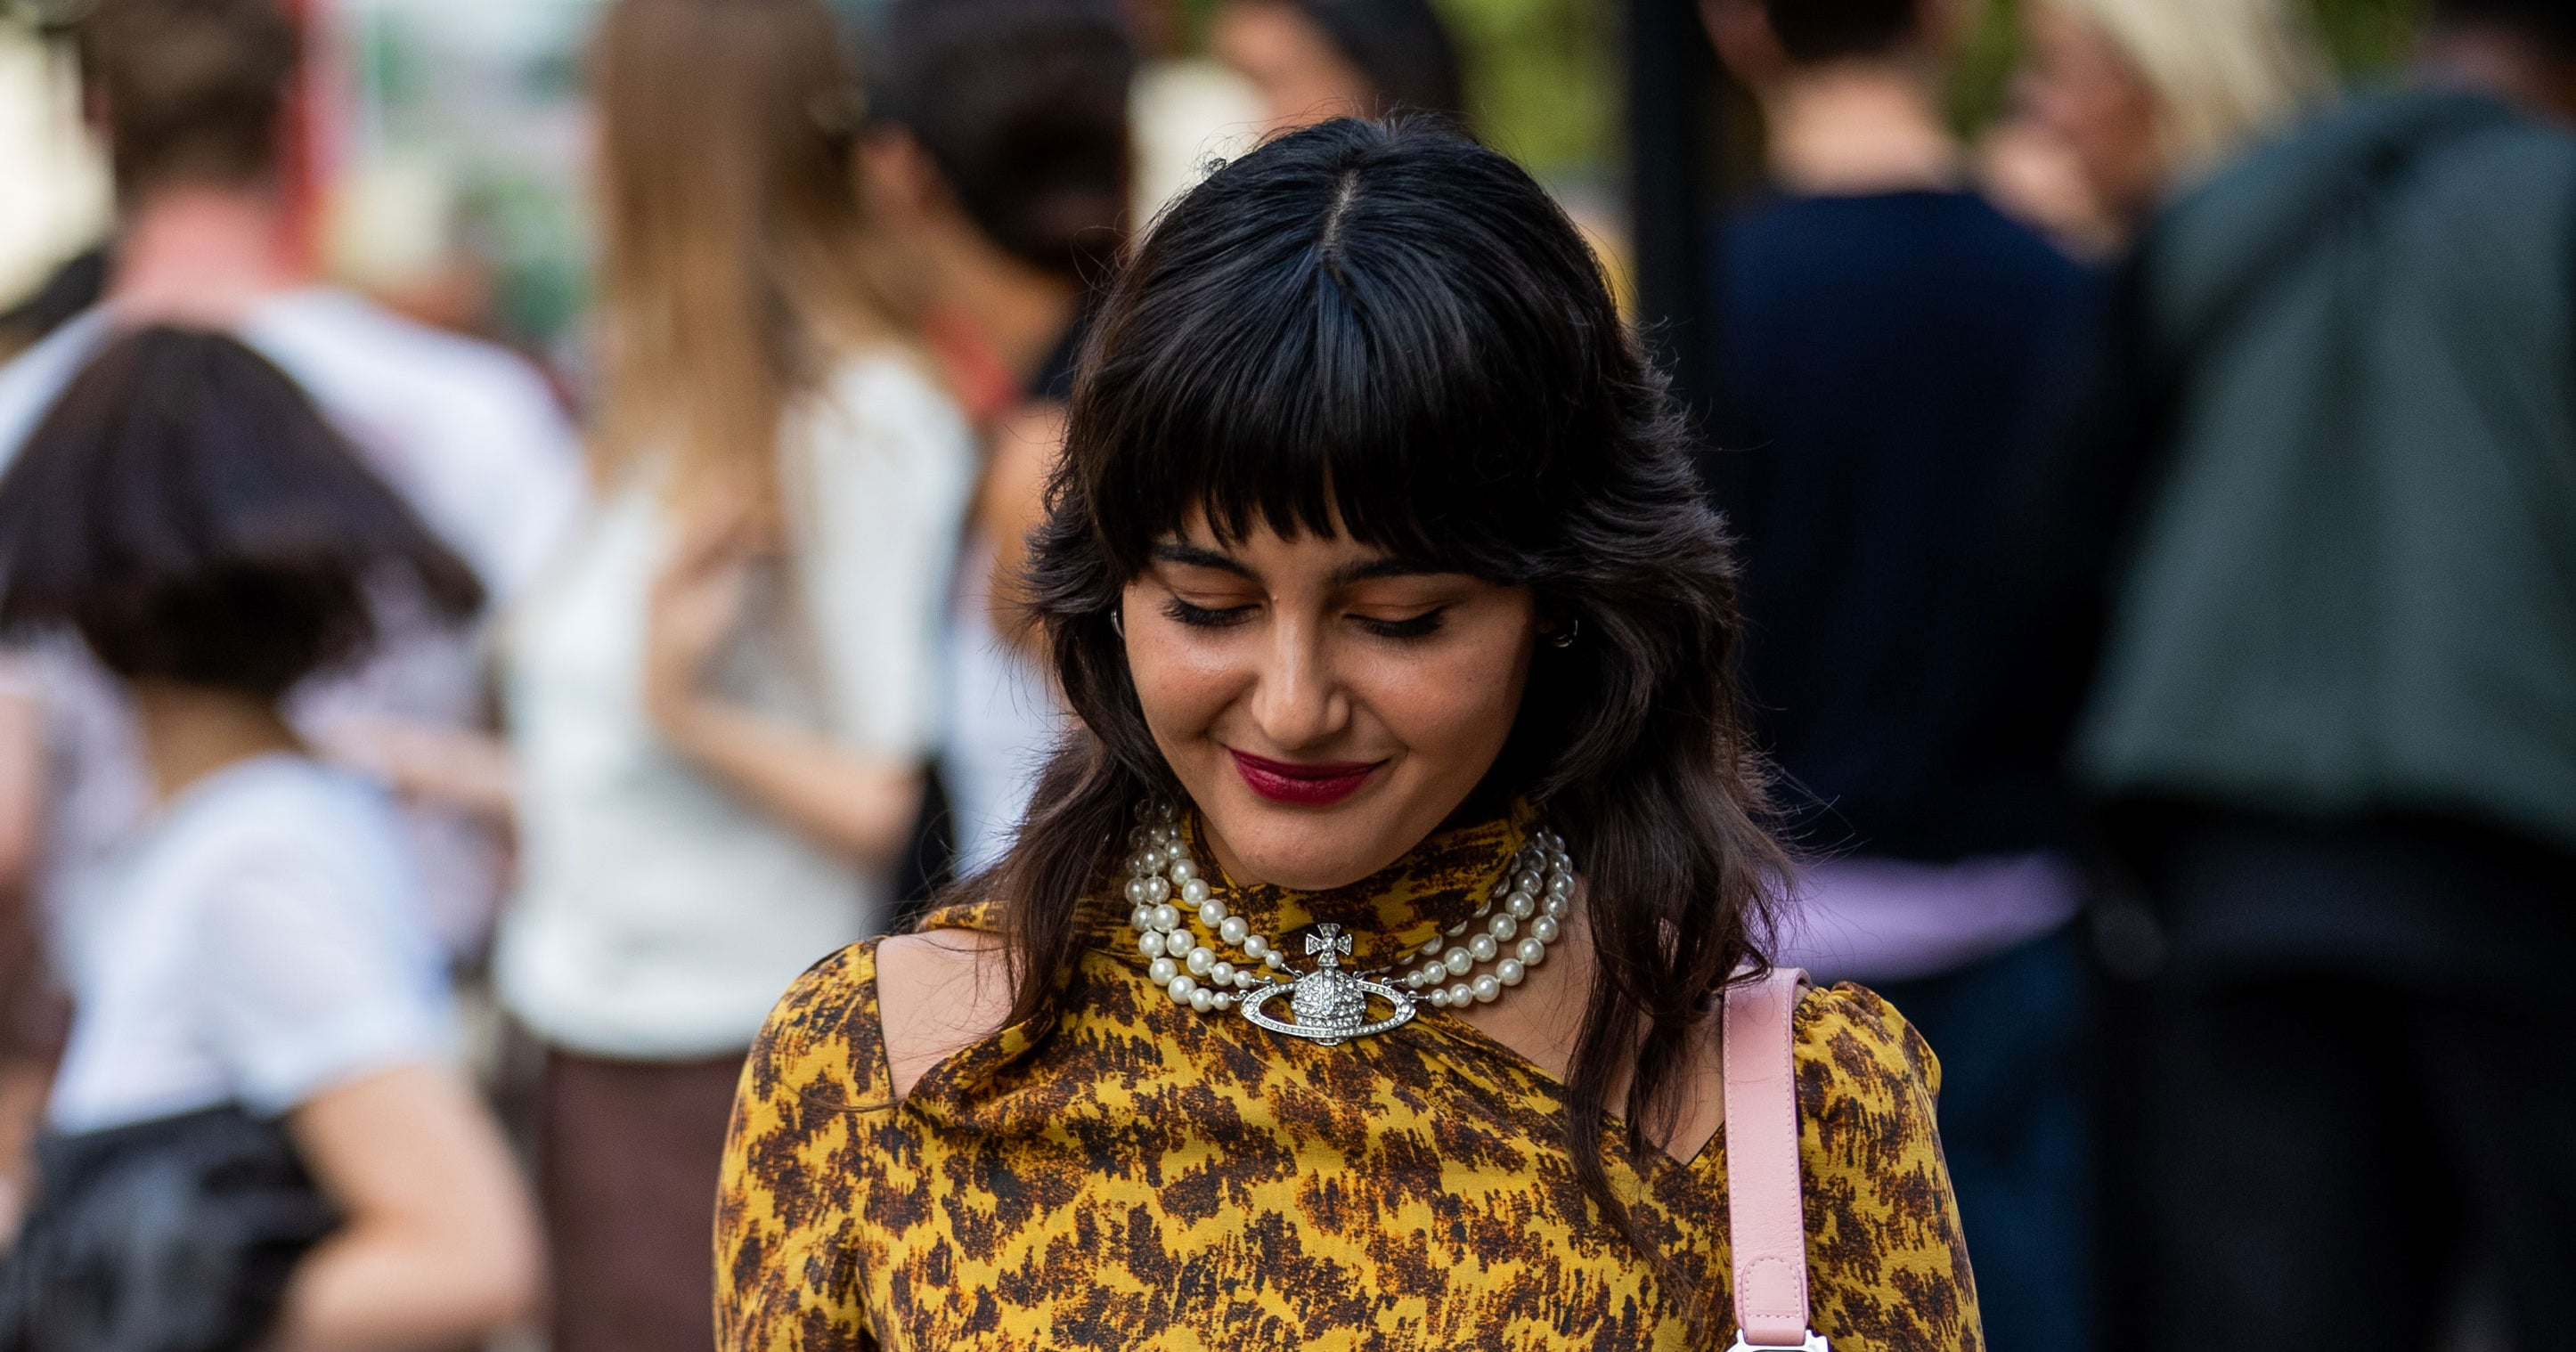 The Coolest Haircut Trends London Fashion Week Street Style Has To Offer